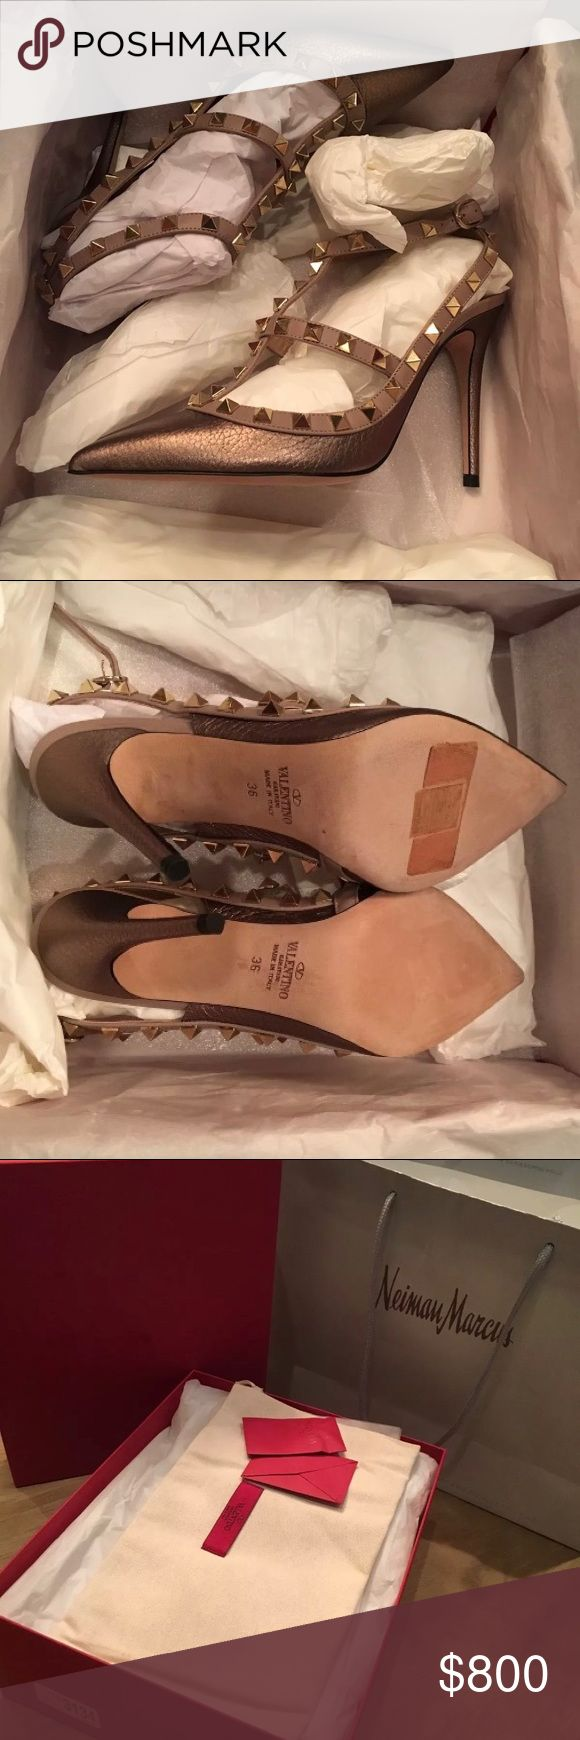 Valentino Taupe Pebbled Rockstud Pump New in box. Purchased at Neiman Marcus. I've only worn these once they're a little too small which is why I'm selling. Price tag is still on box. They retail for $1045 but I paid around $1200 including tax. Valentino Shoes Heels